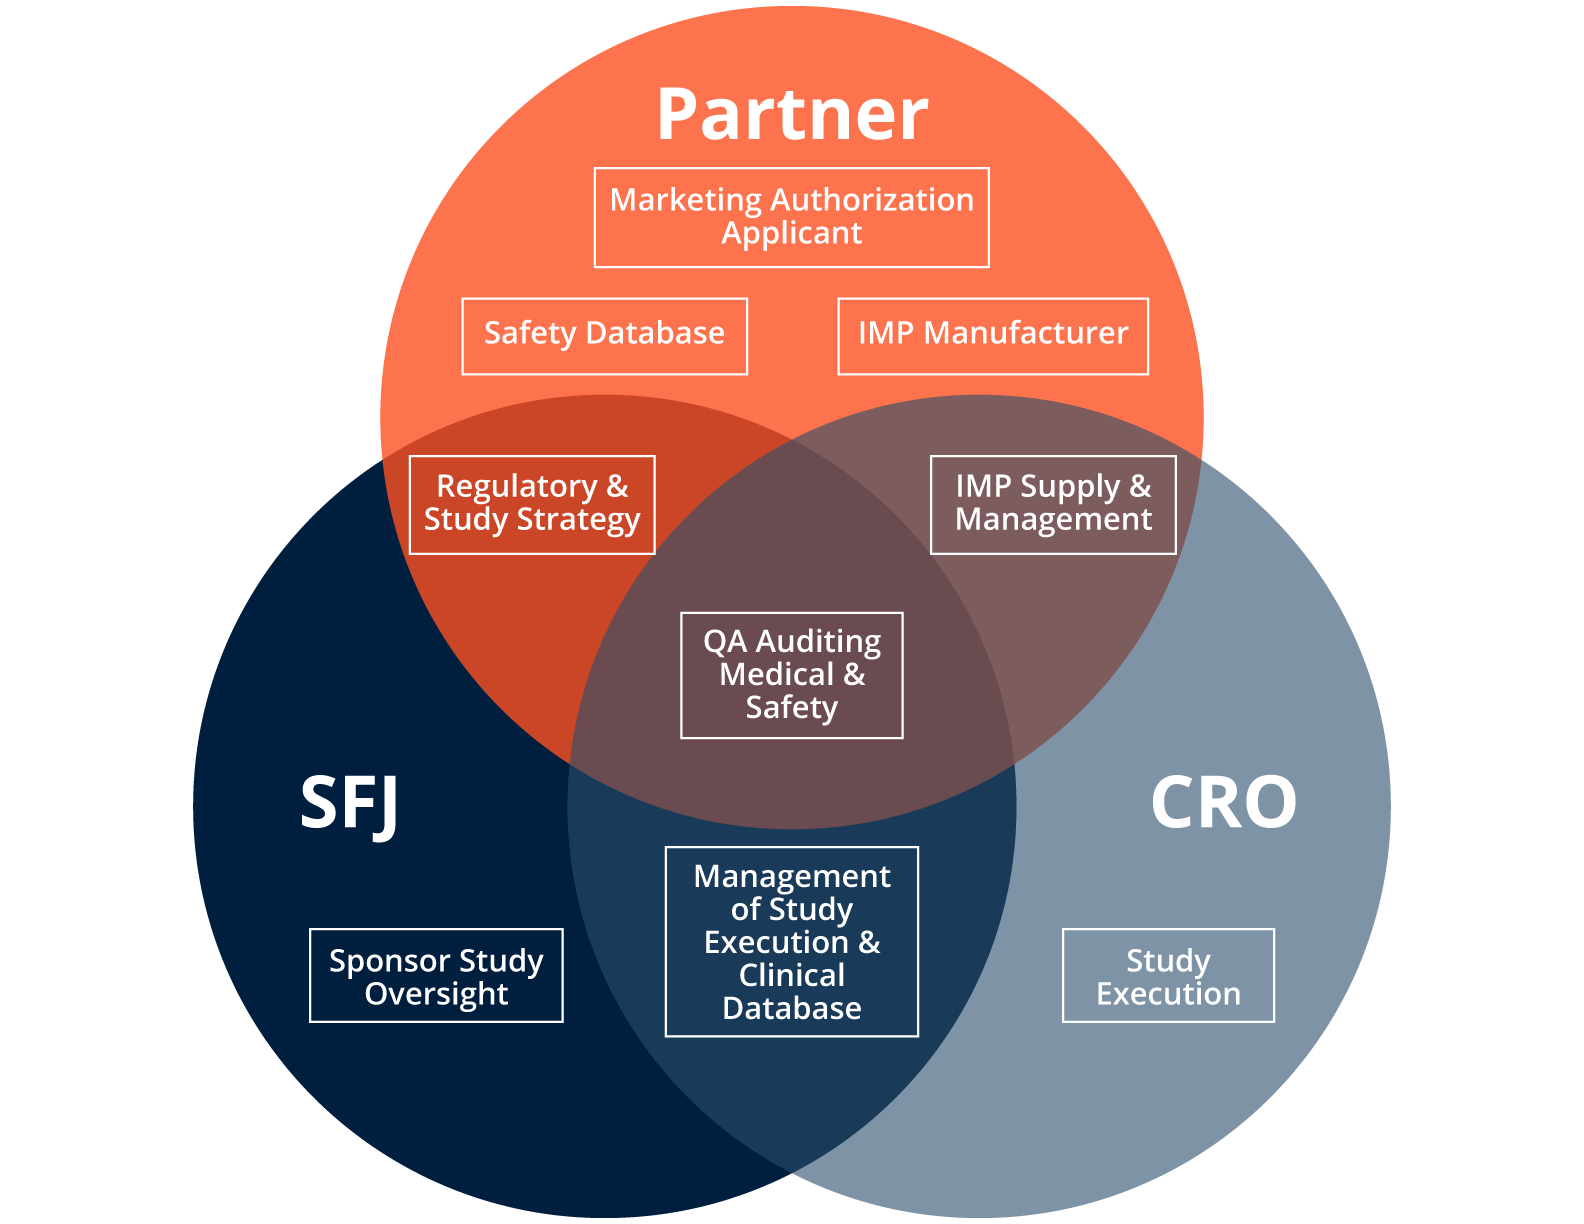 SFJ-Pharmaceuticals typical approach